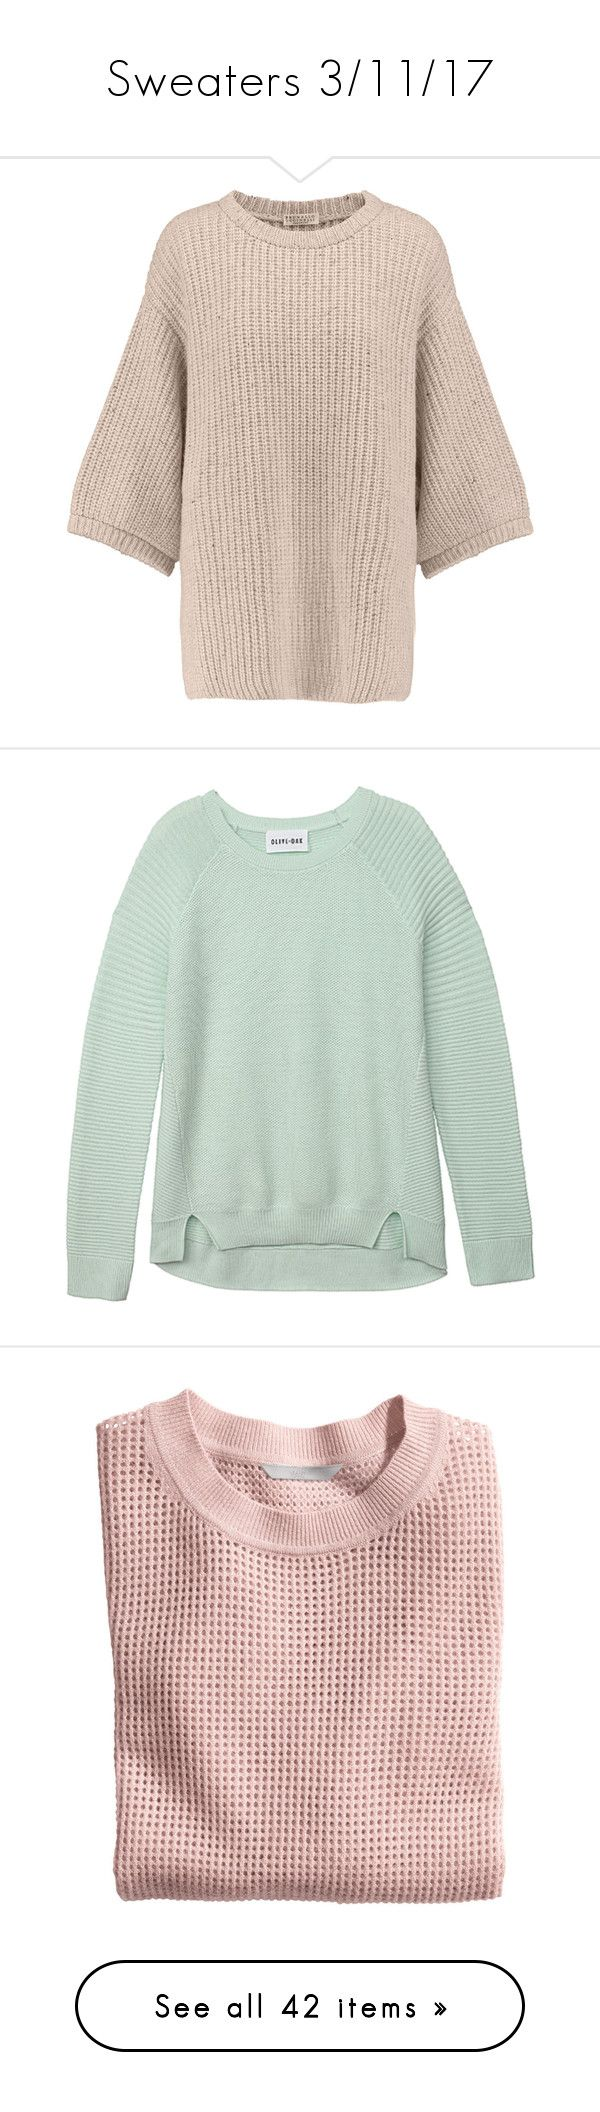 """Sweaters 3/11/17"" by sparkles-and-salamanders ❤ liked on Polyvore featuring tops, sweaters, blush, pink top, metallic top, batwing sleeve tops, brunello cucinelli top, ribbed top, heather grey and sweater pullover"